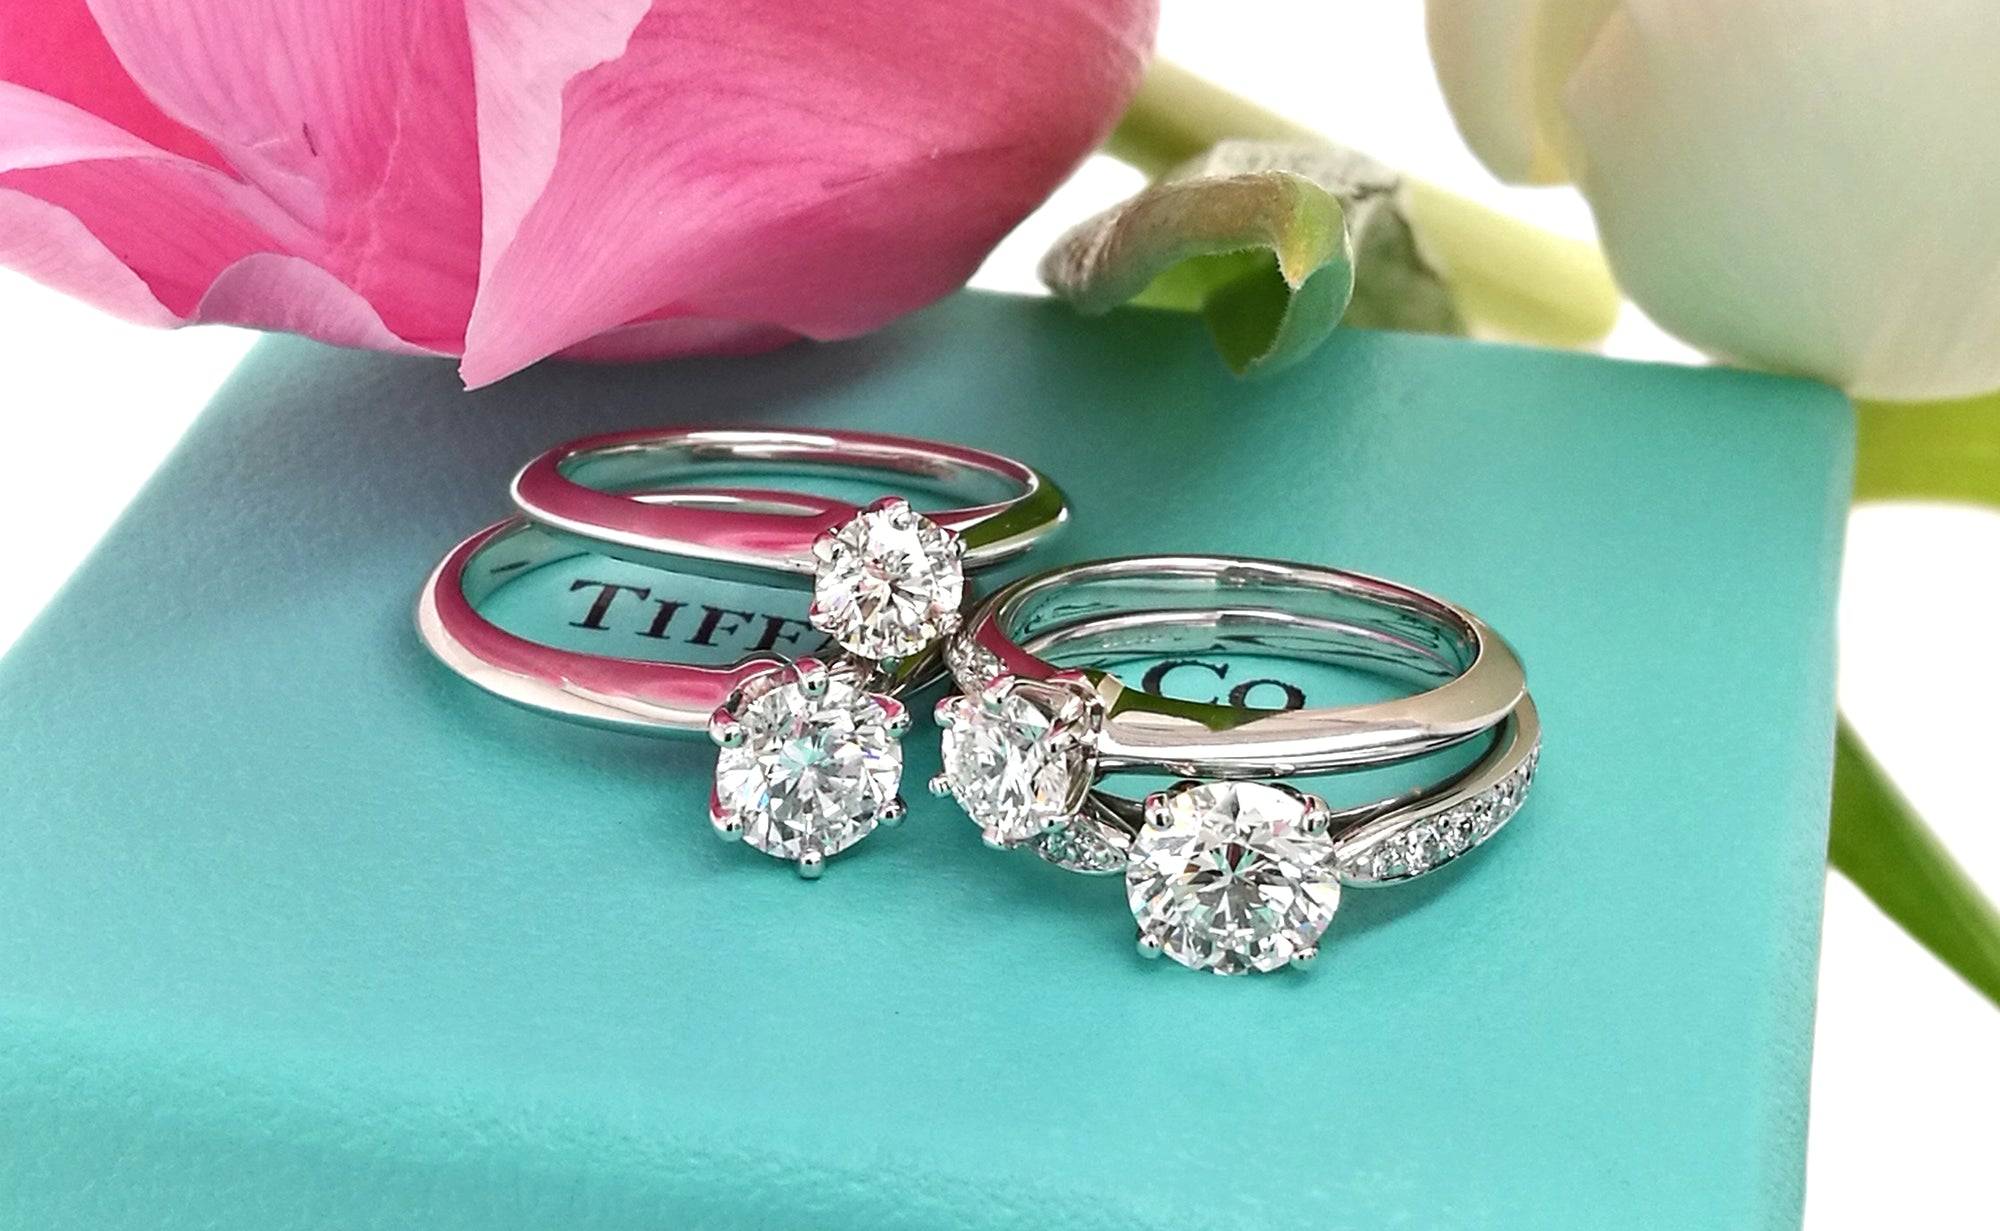 Used, Second Hand or Pre-owned Tiffany Engagement Rings?